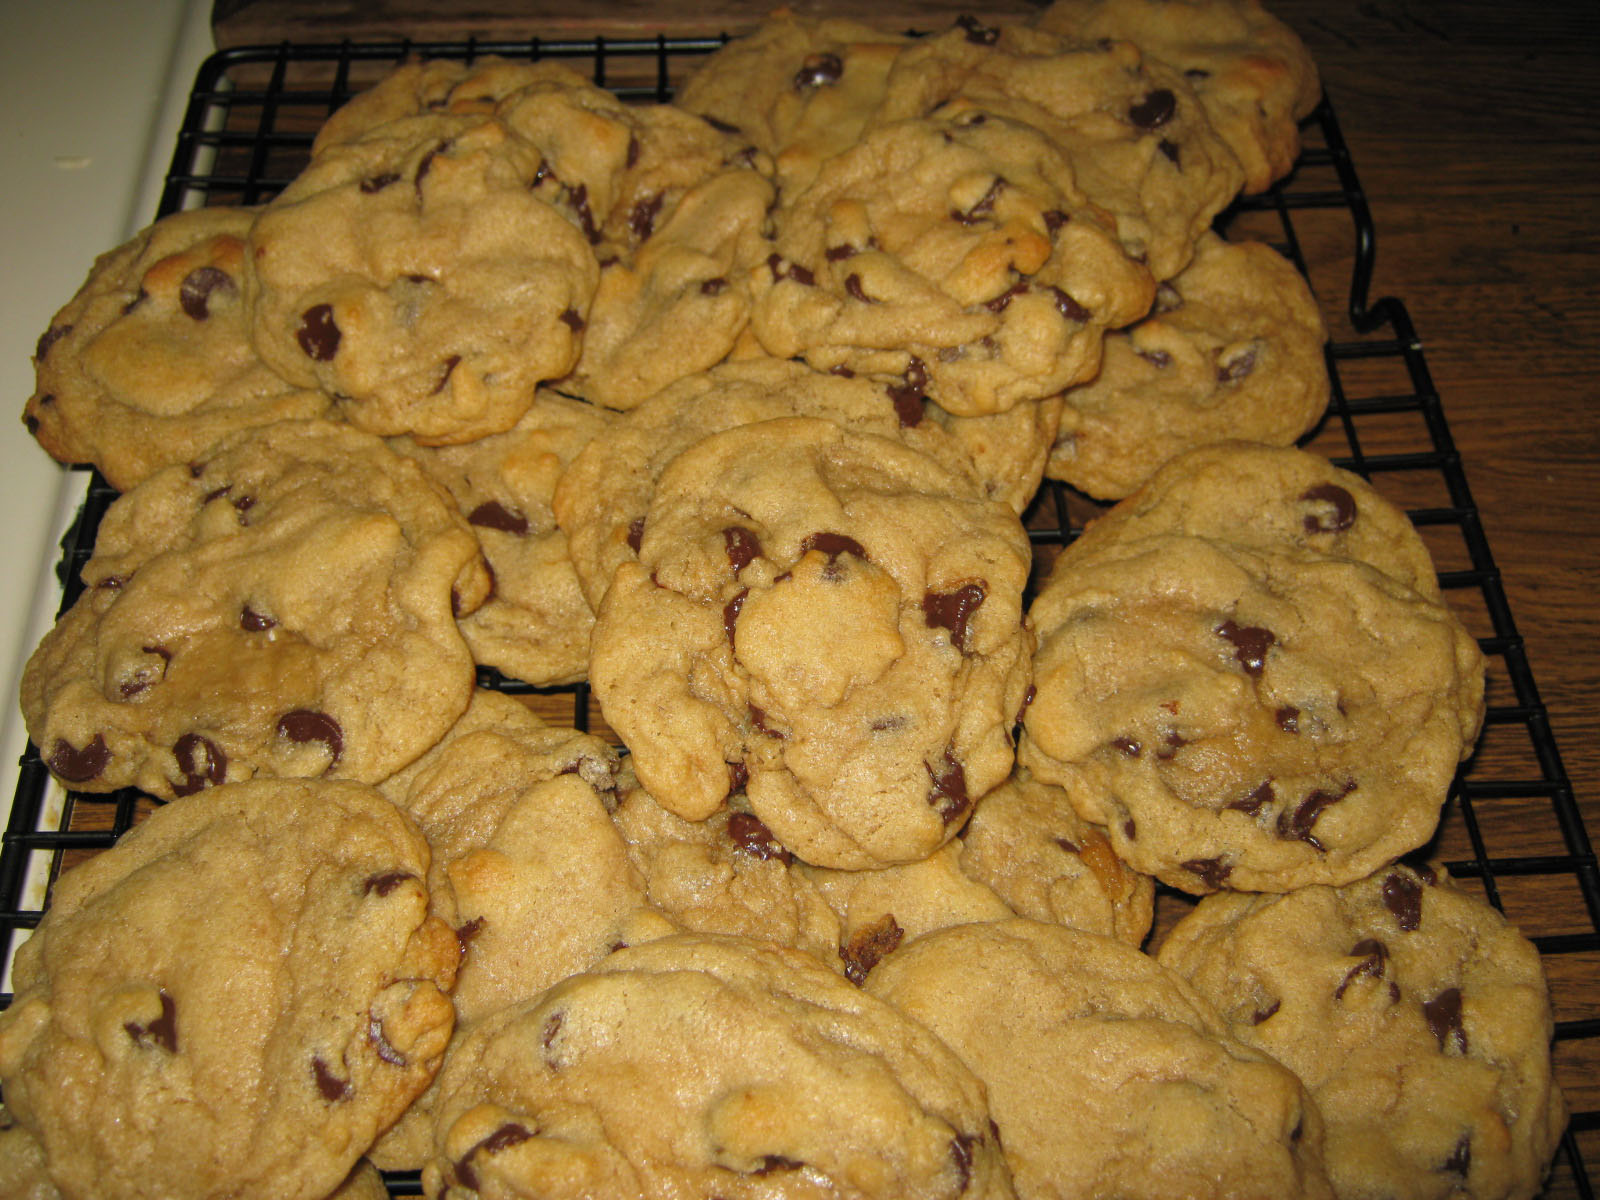 Easy Peasy Lemon Squeezy: All-American Chocolate Chip Cookies